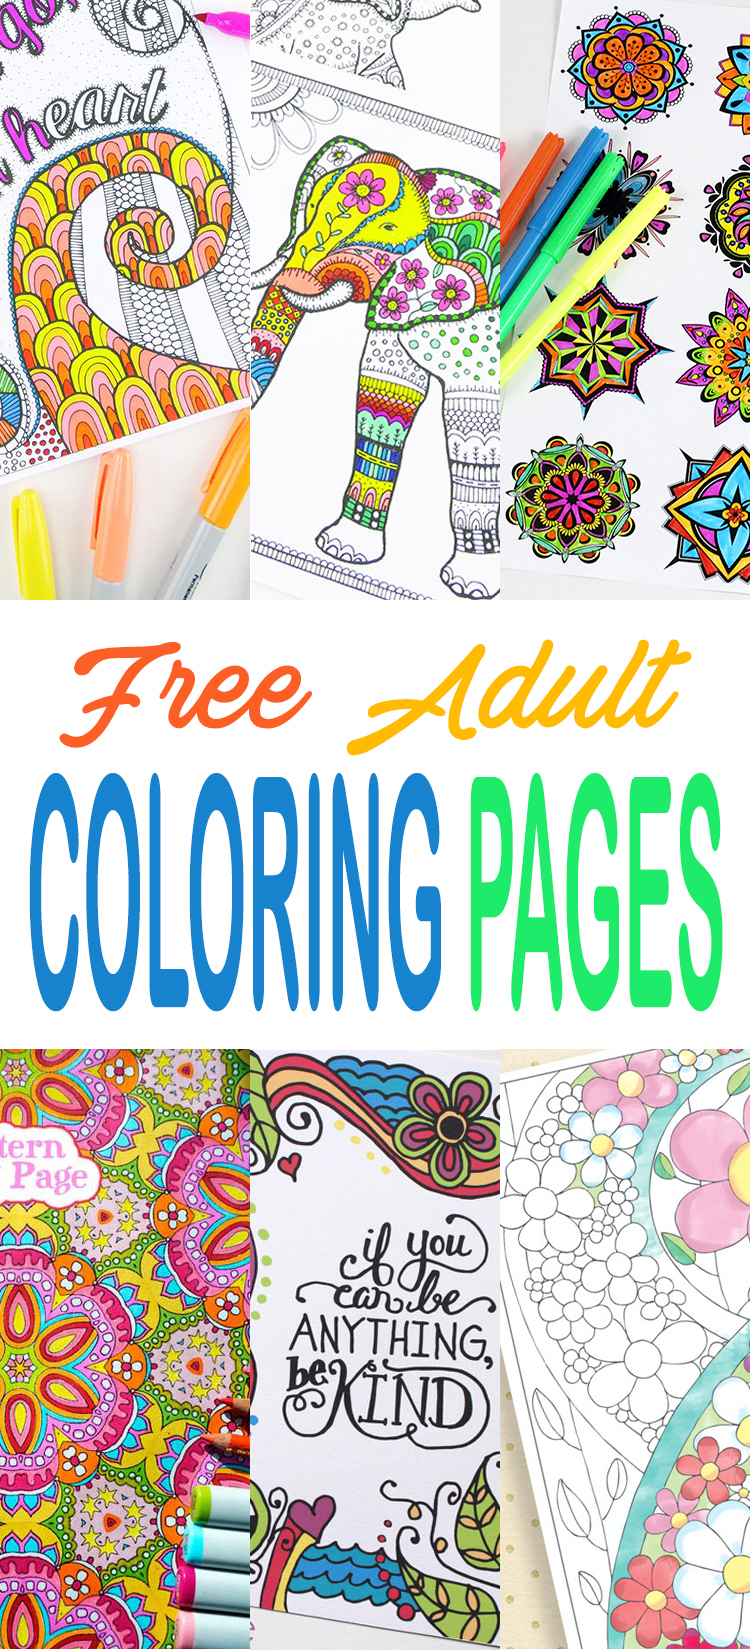 These adult coloring pages are totally free and printable too.